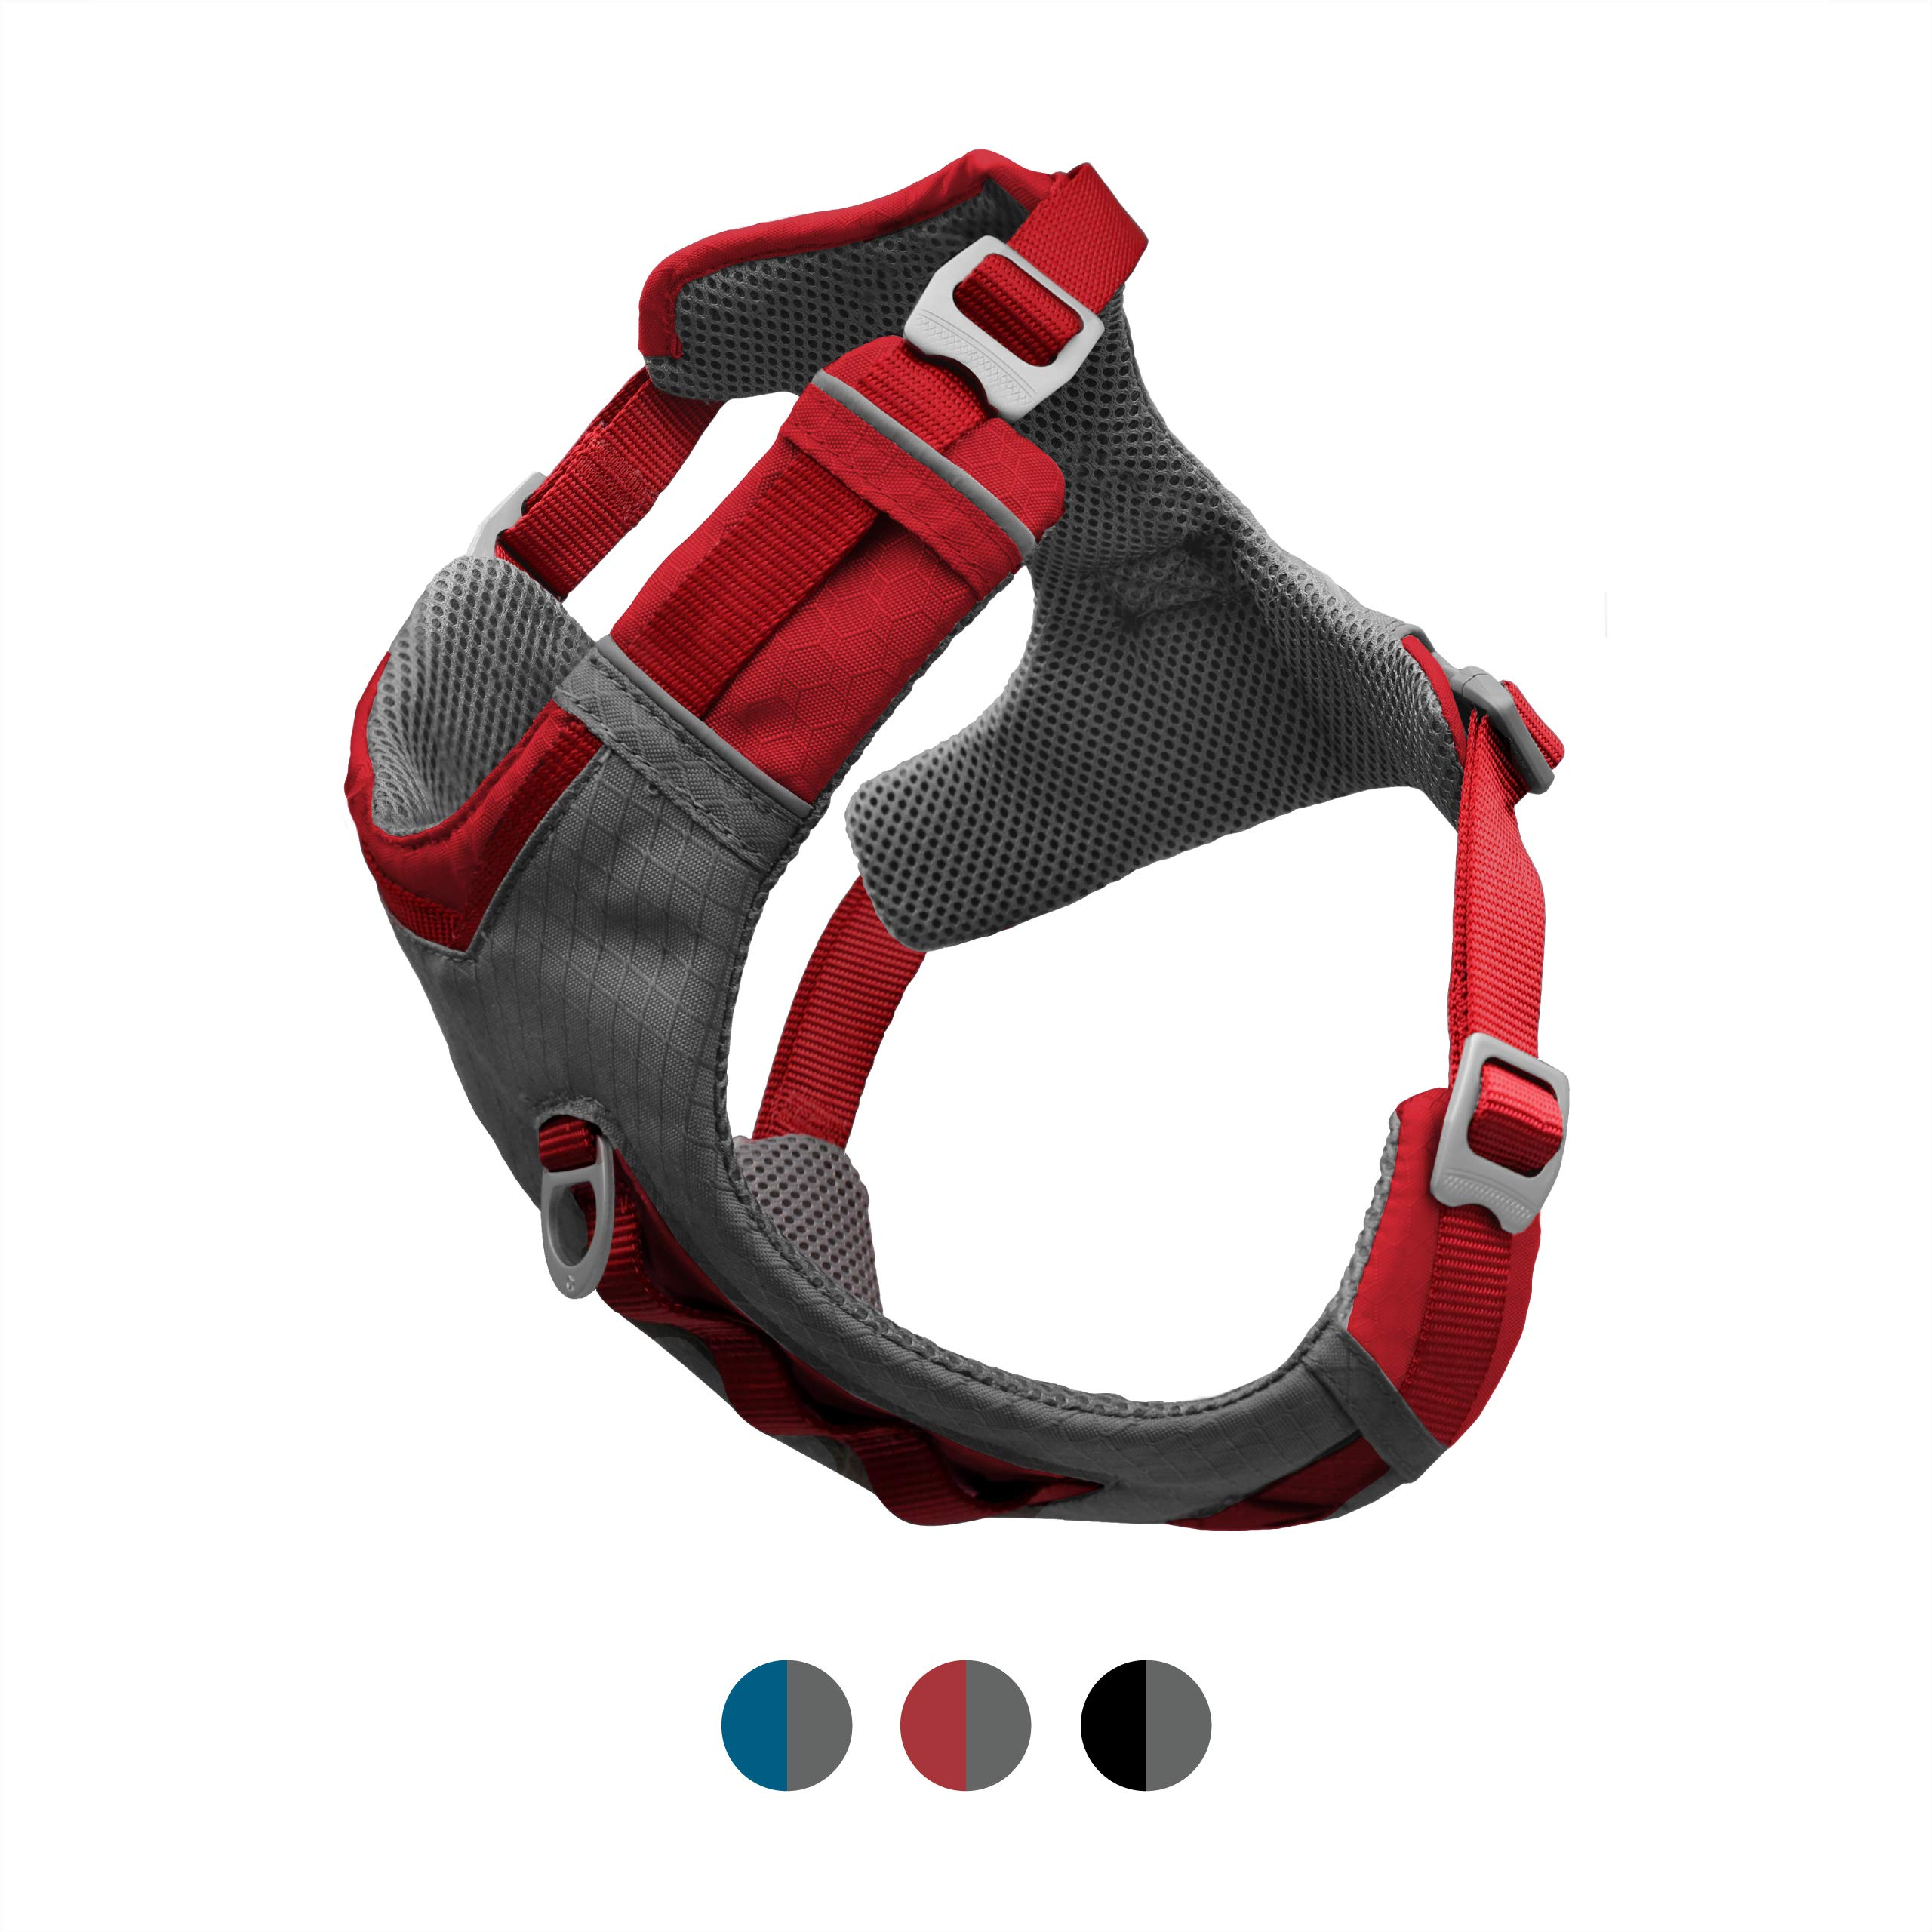 Kurgo Dog Harness for Large, Medium & Small Dogs | Reflective Harness for Running, Walking & Hiking | Everyday Adventure Pet Journey Air Style | Red/Grey | Large